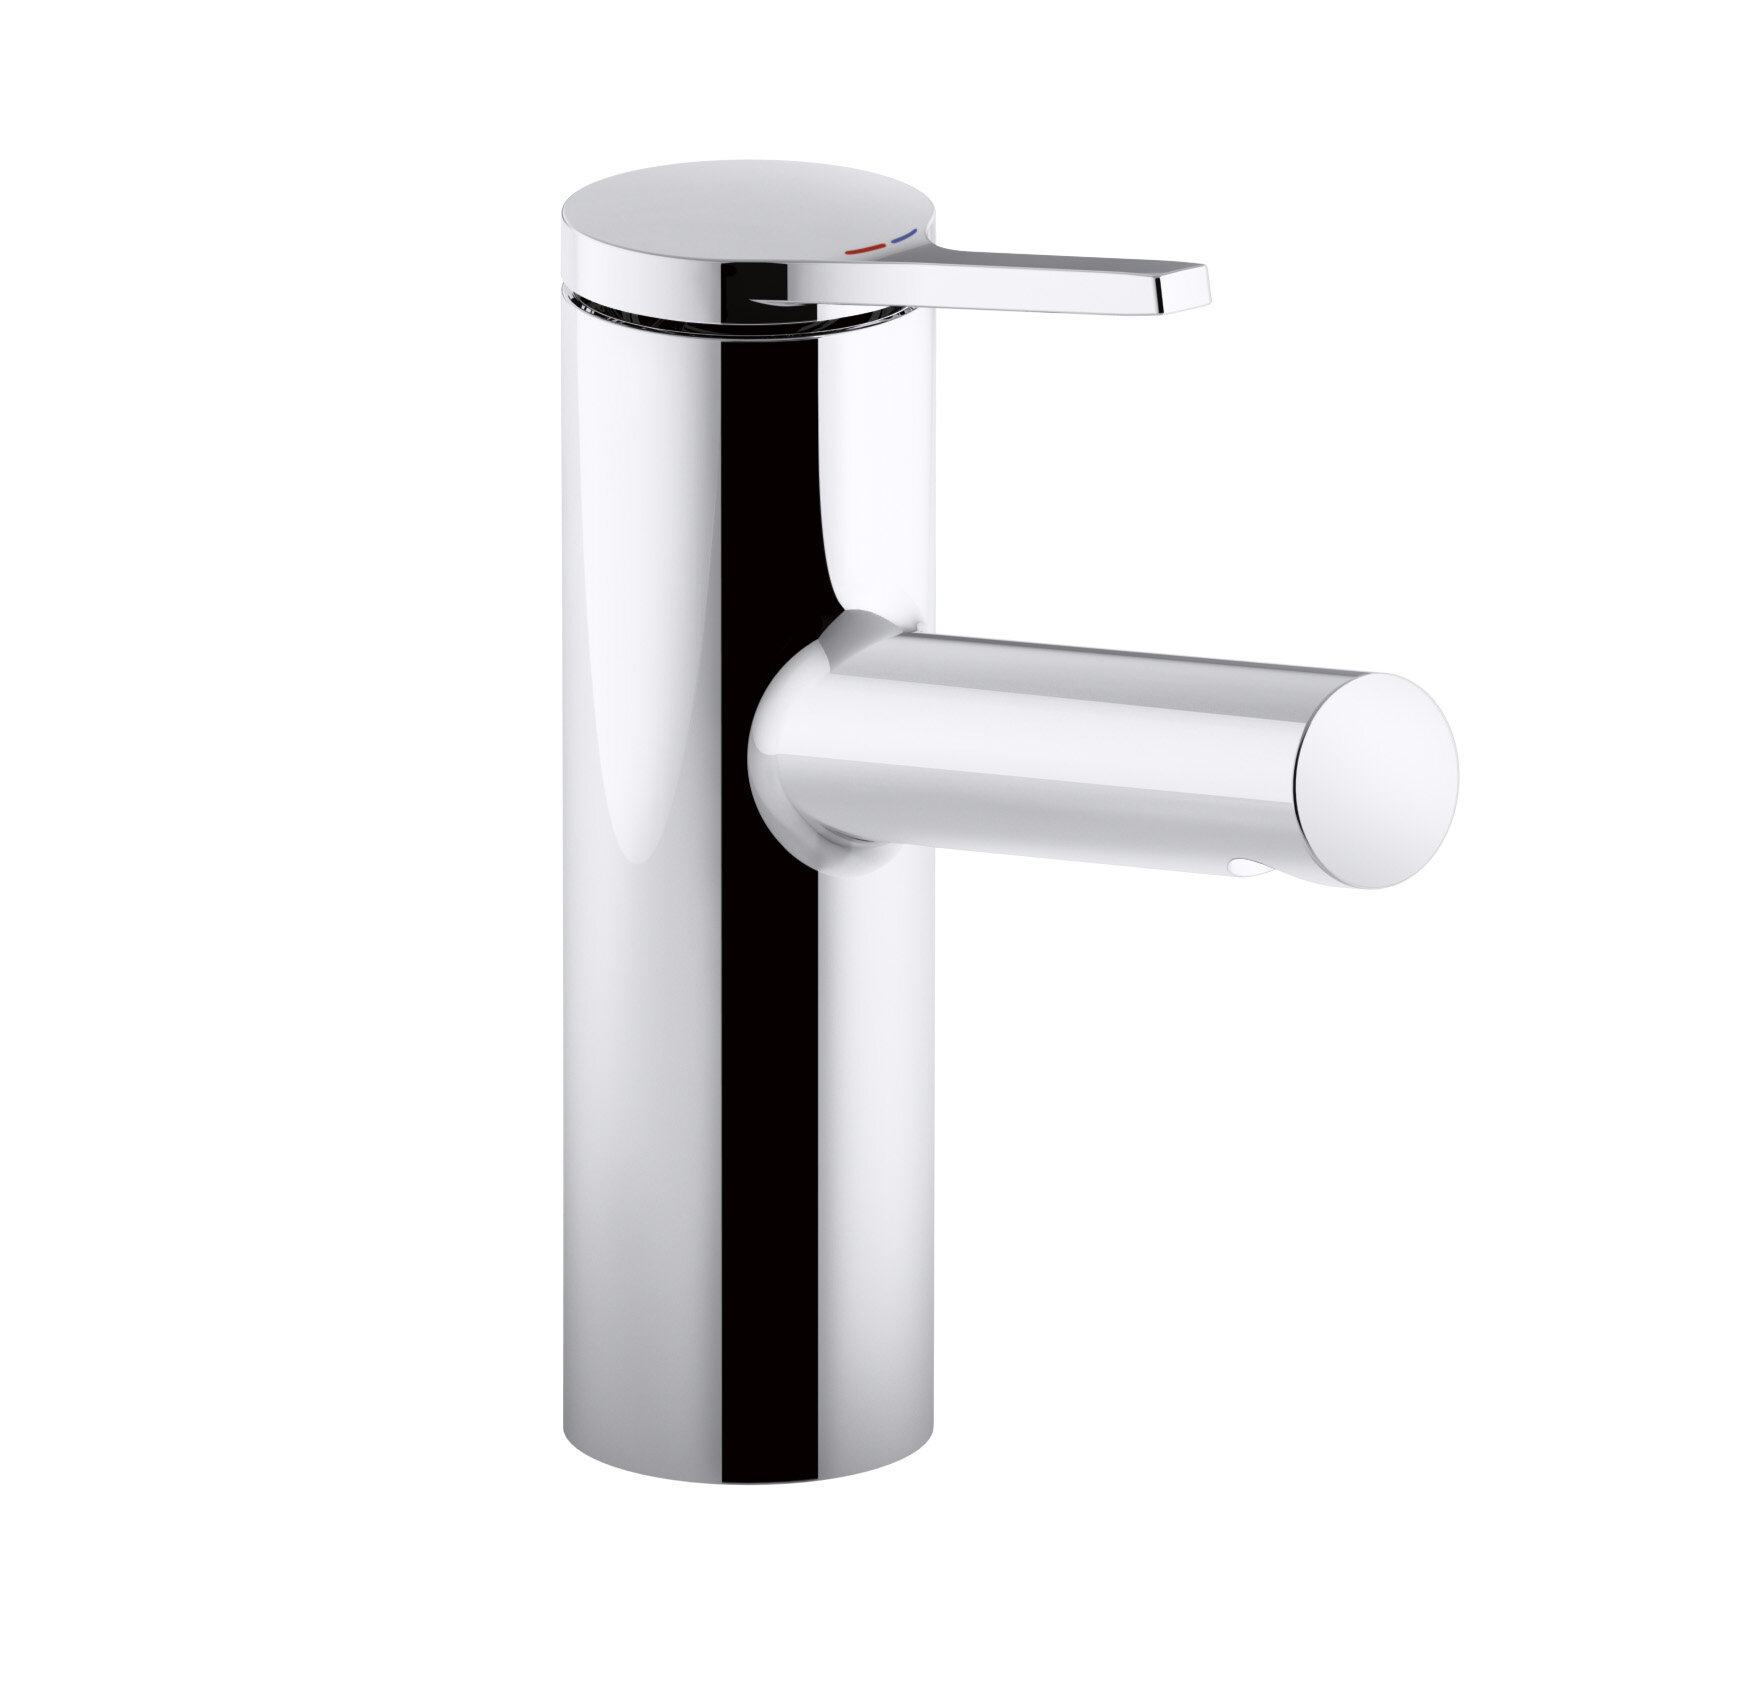 body faucet chrome cr handle dax inches bathtub finish brass bathroom products x single